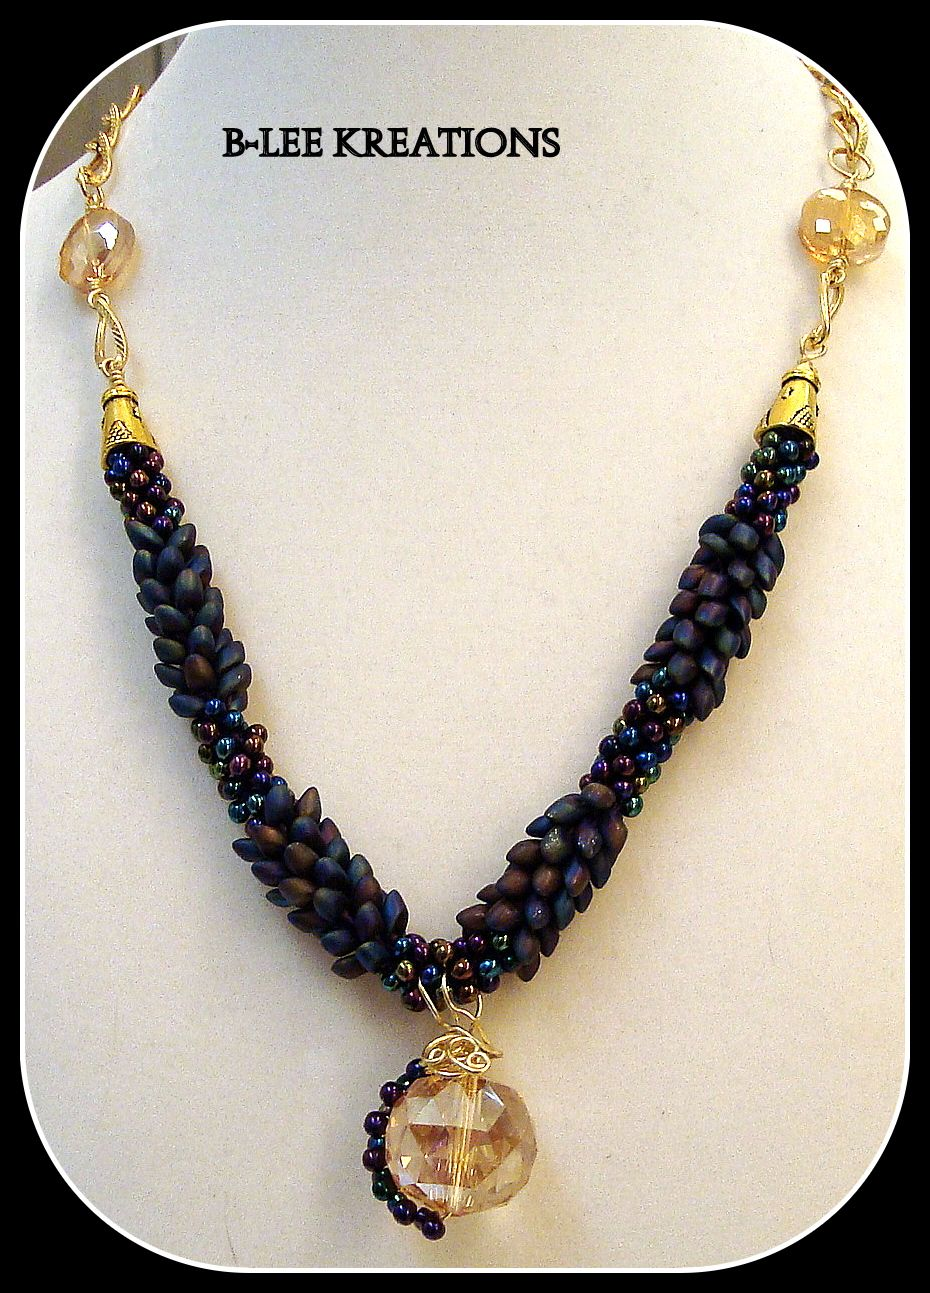 This is a Kumihimo necklace I made and added chain and crystals.